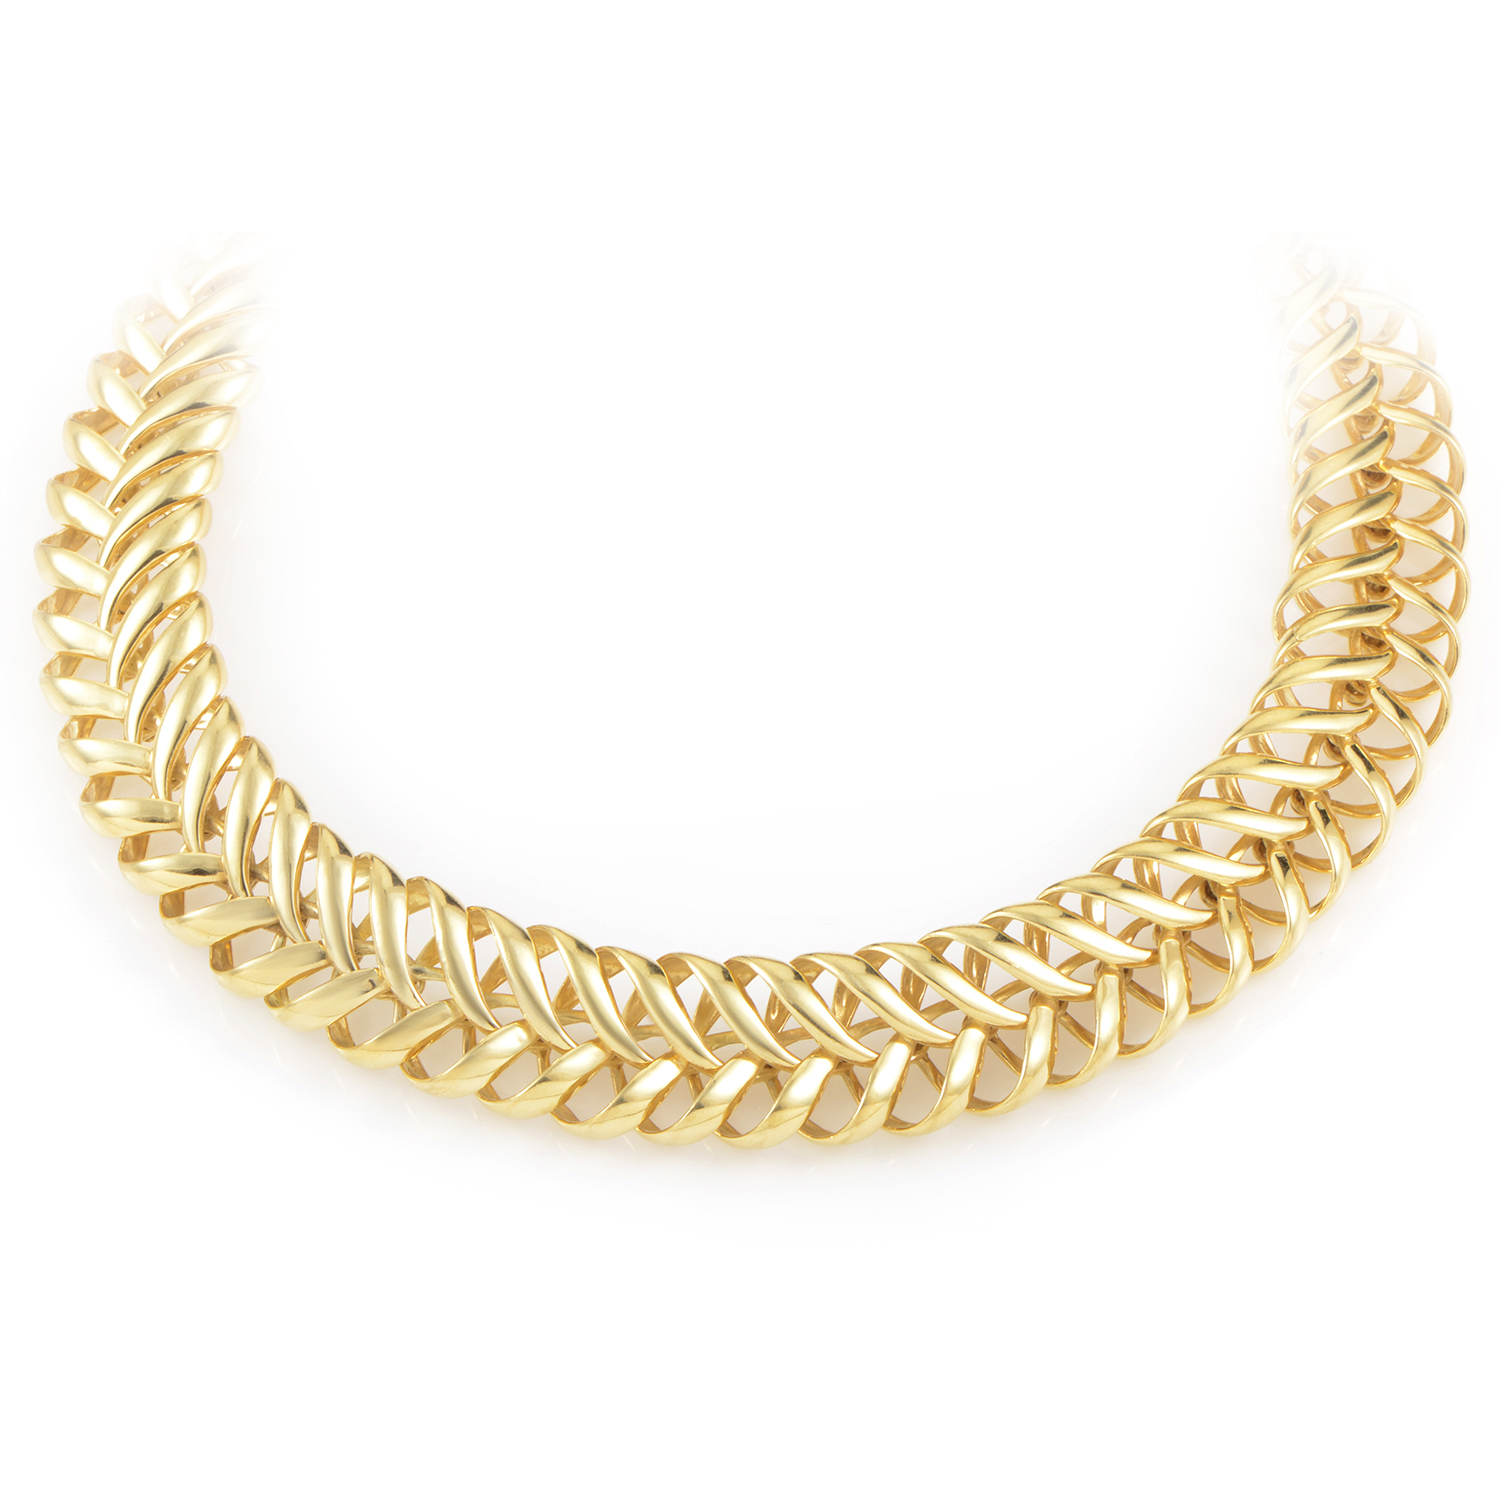 Women's 18K Yellow Gold Choker Necklace